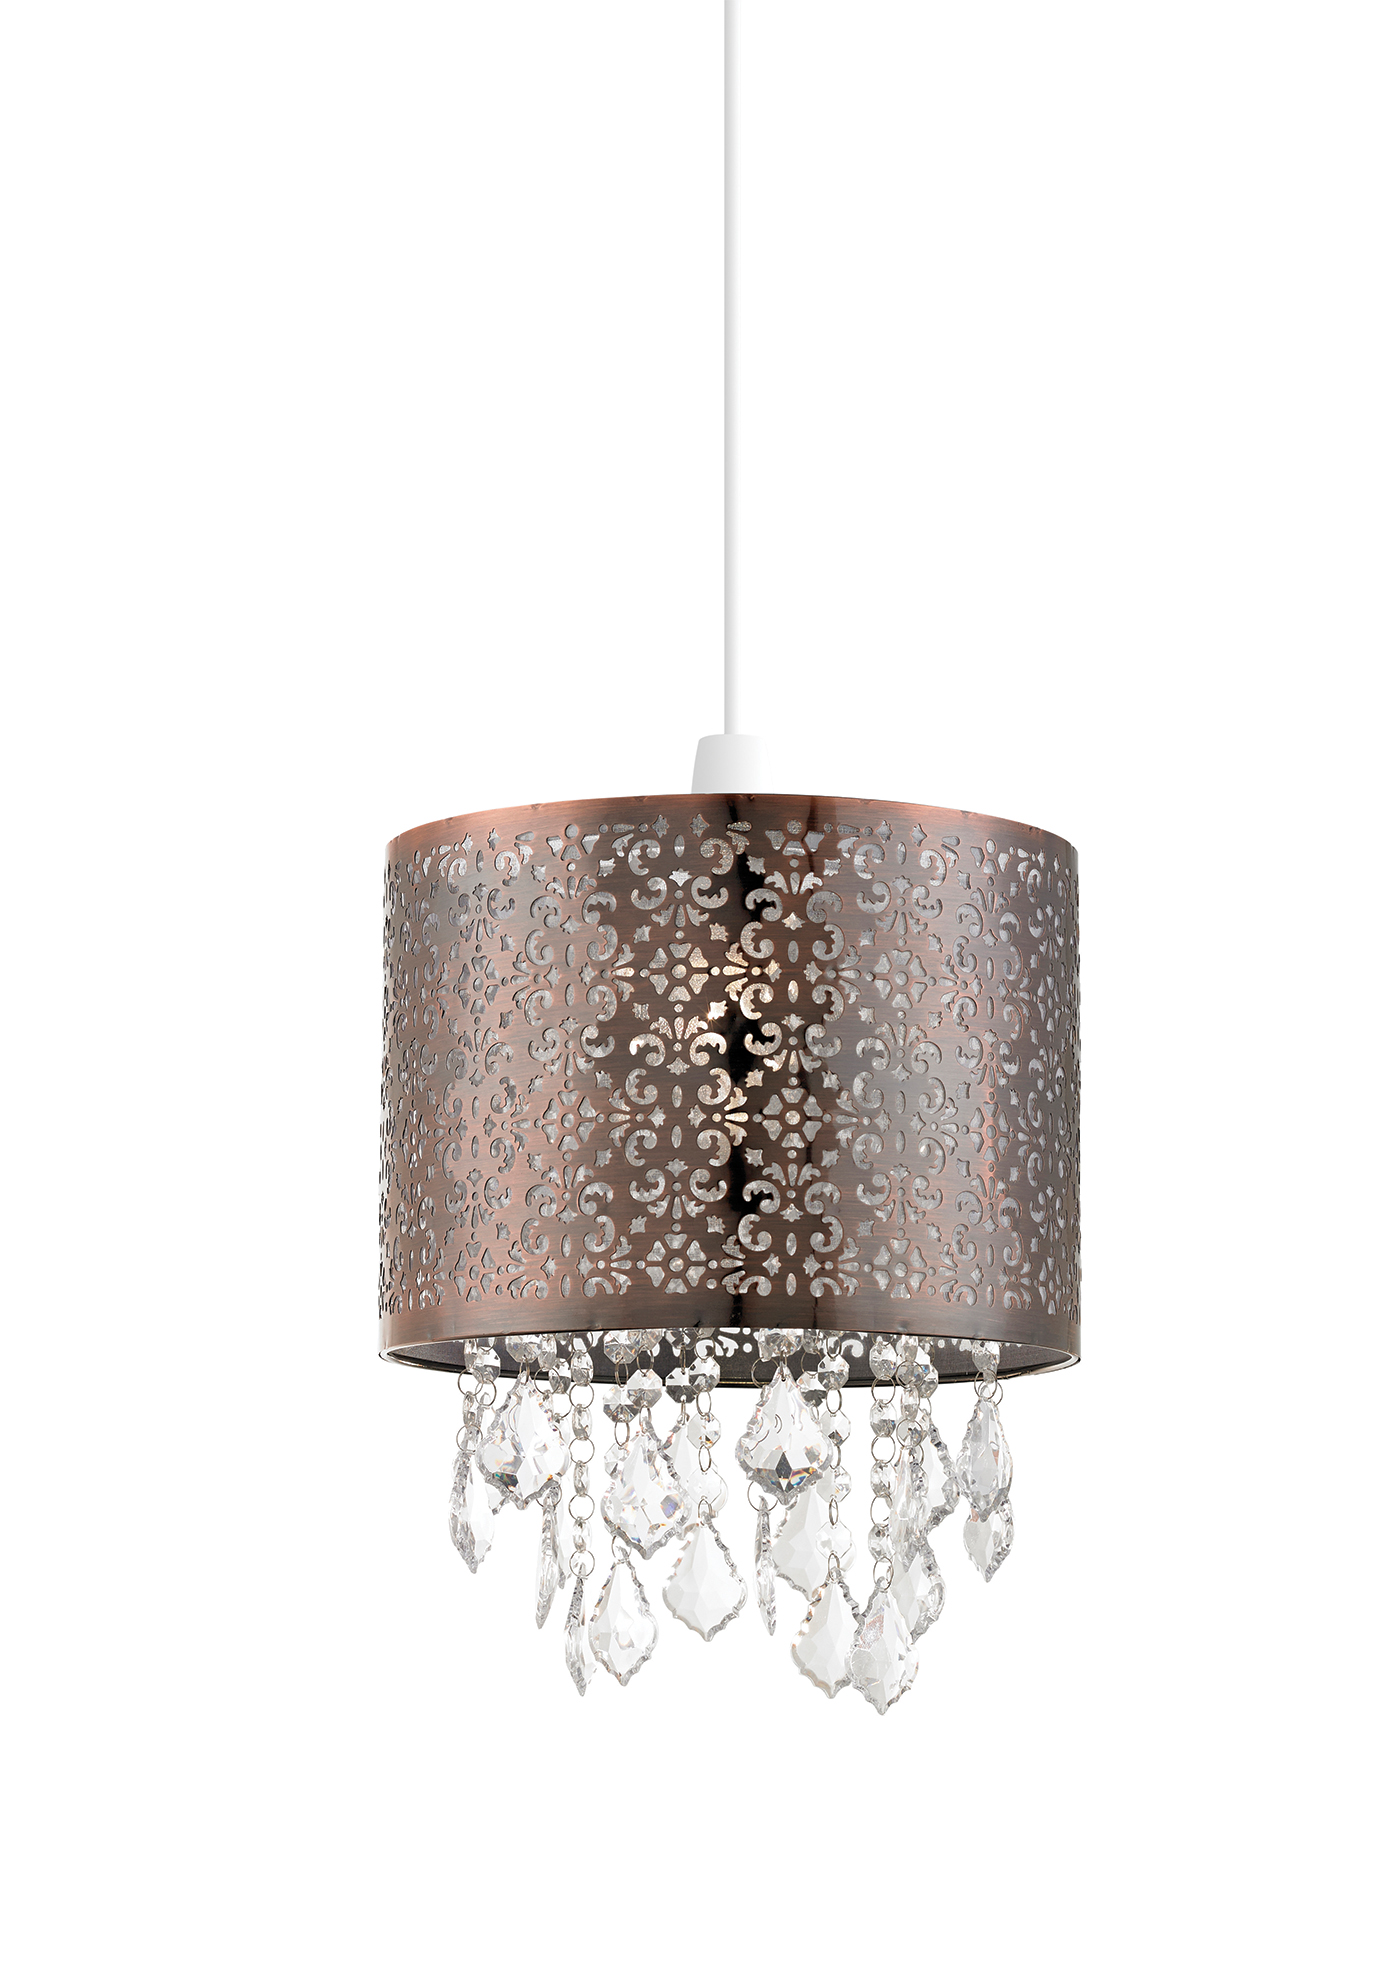 Endon Moccas pendant shade only 60W Antique brass effect plate & clear acrylic Thumbnail 1